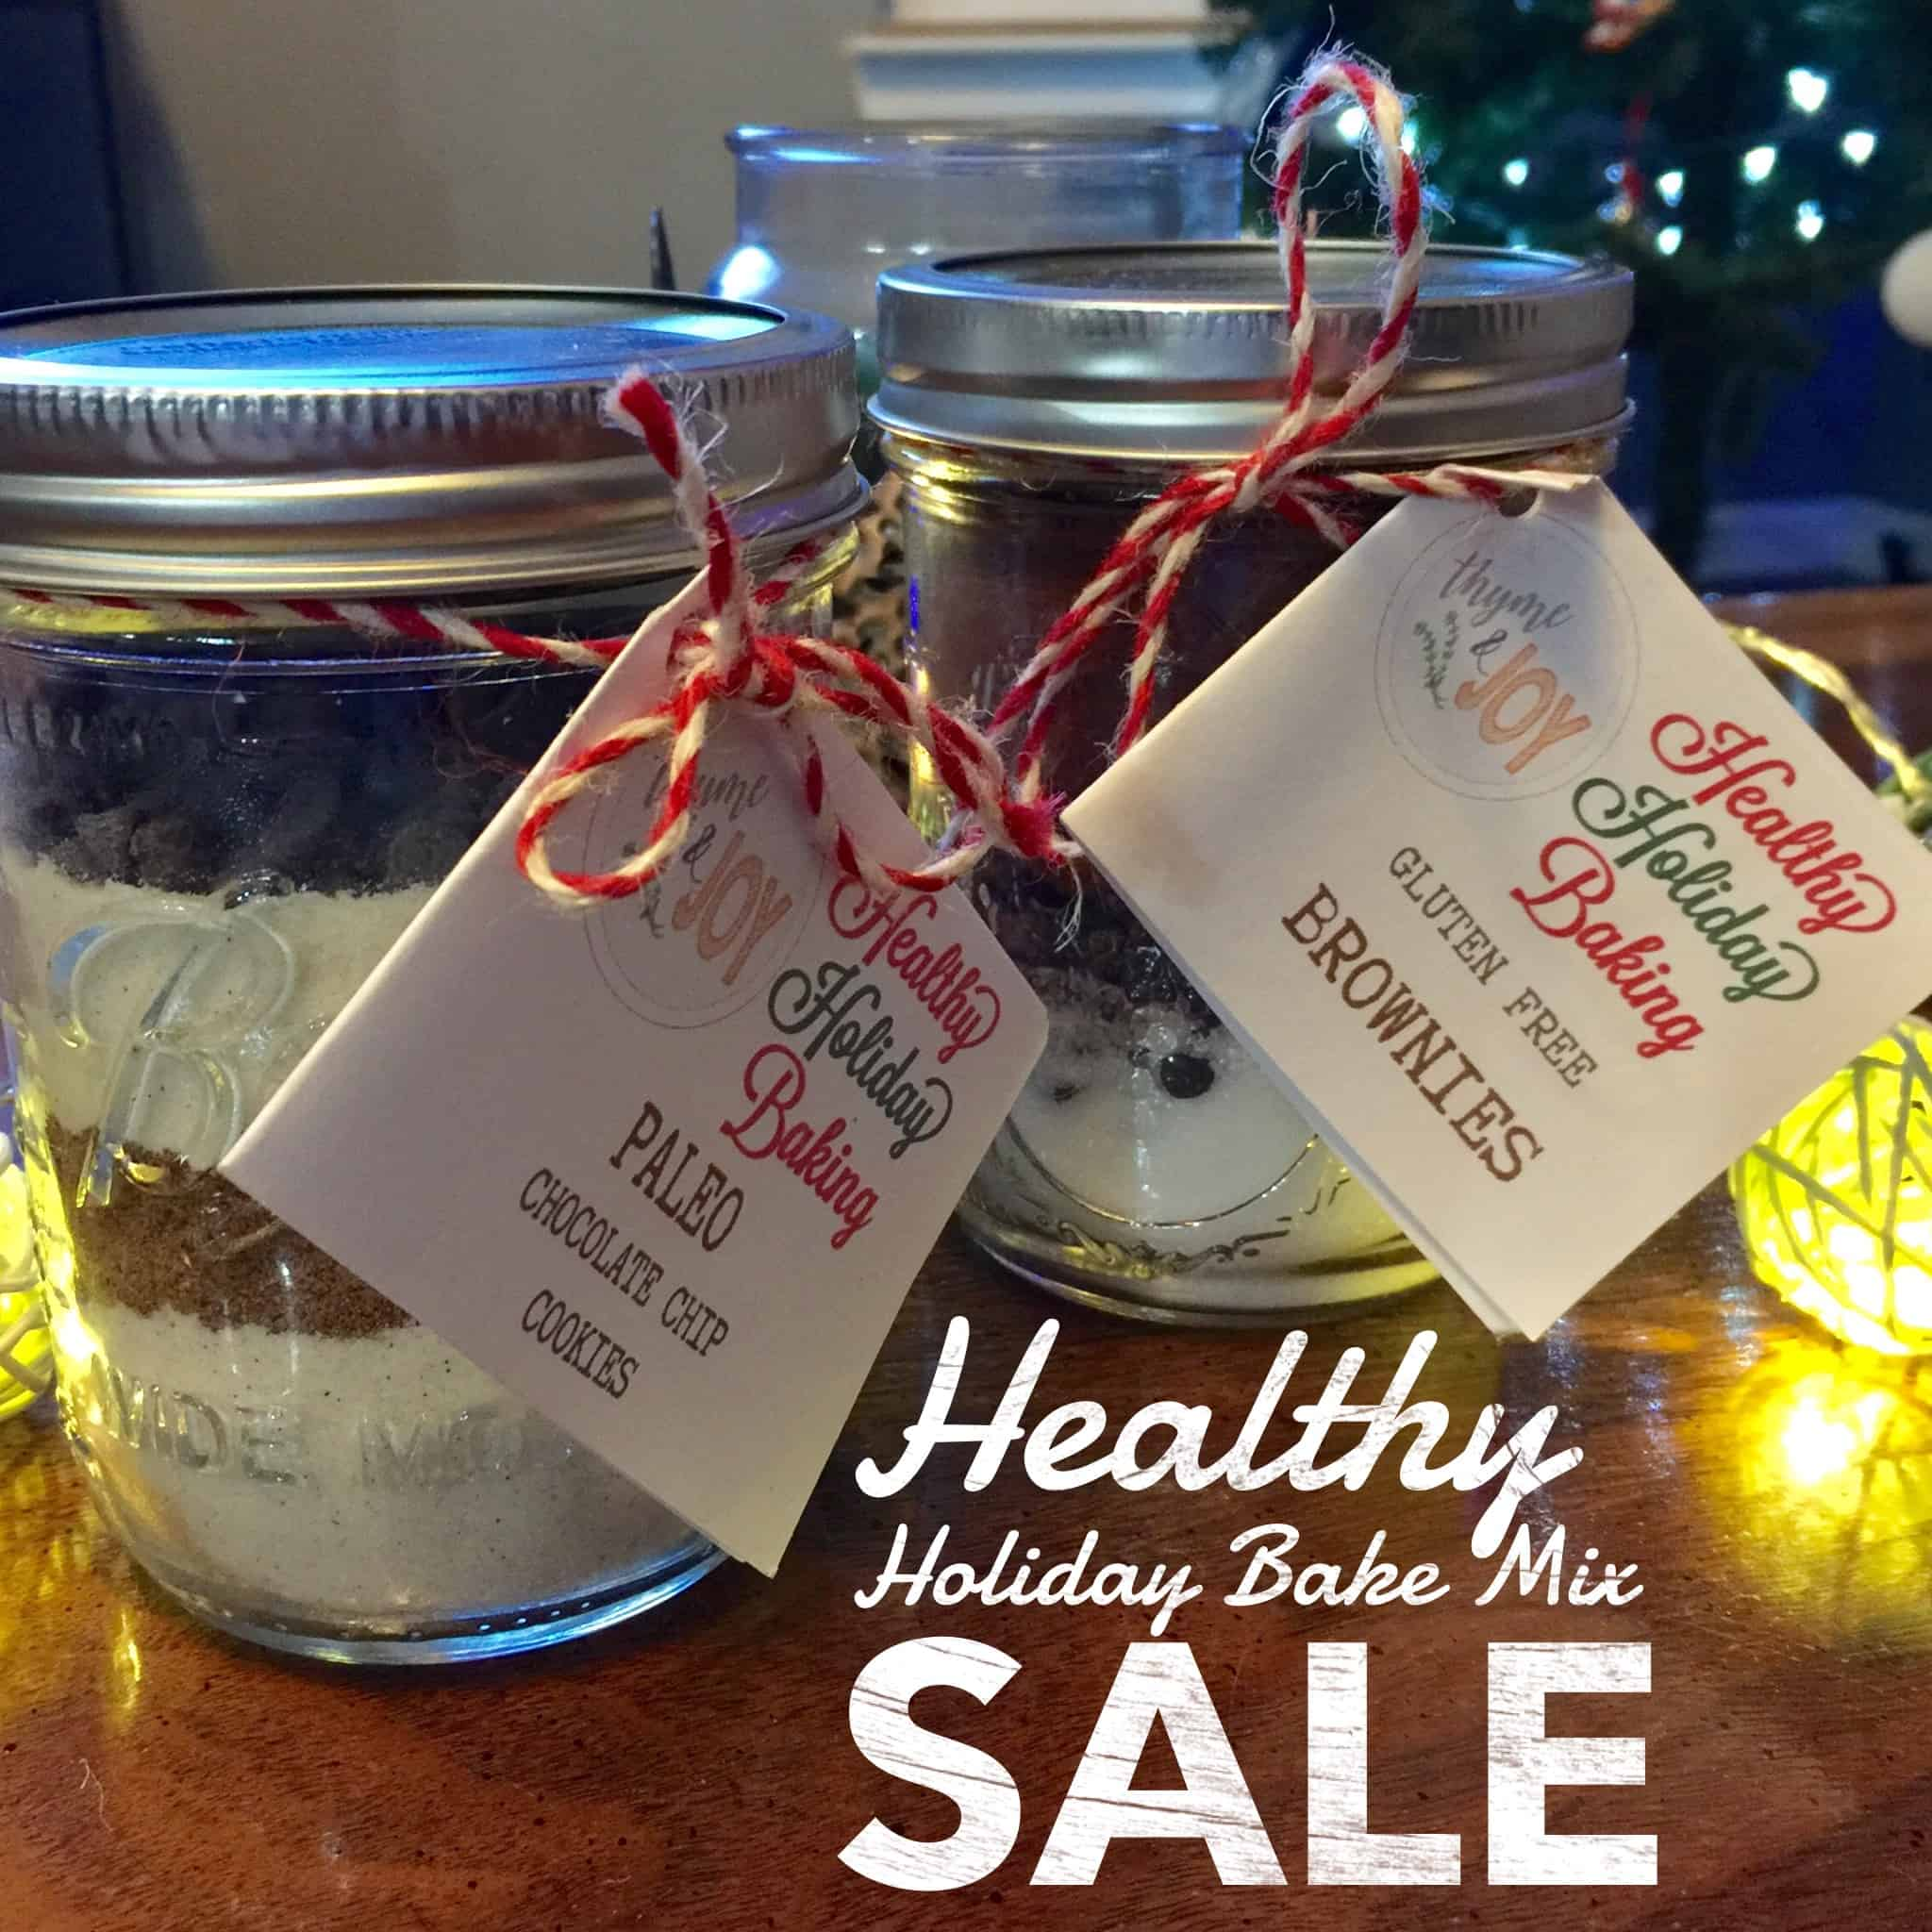 Tis the season for baking! Thyme + JOY is launching two healthy holiday baking mixes for sale in Charleston, SC and surrounding areas.